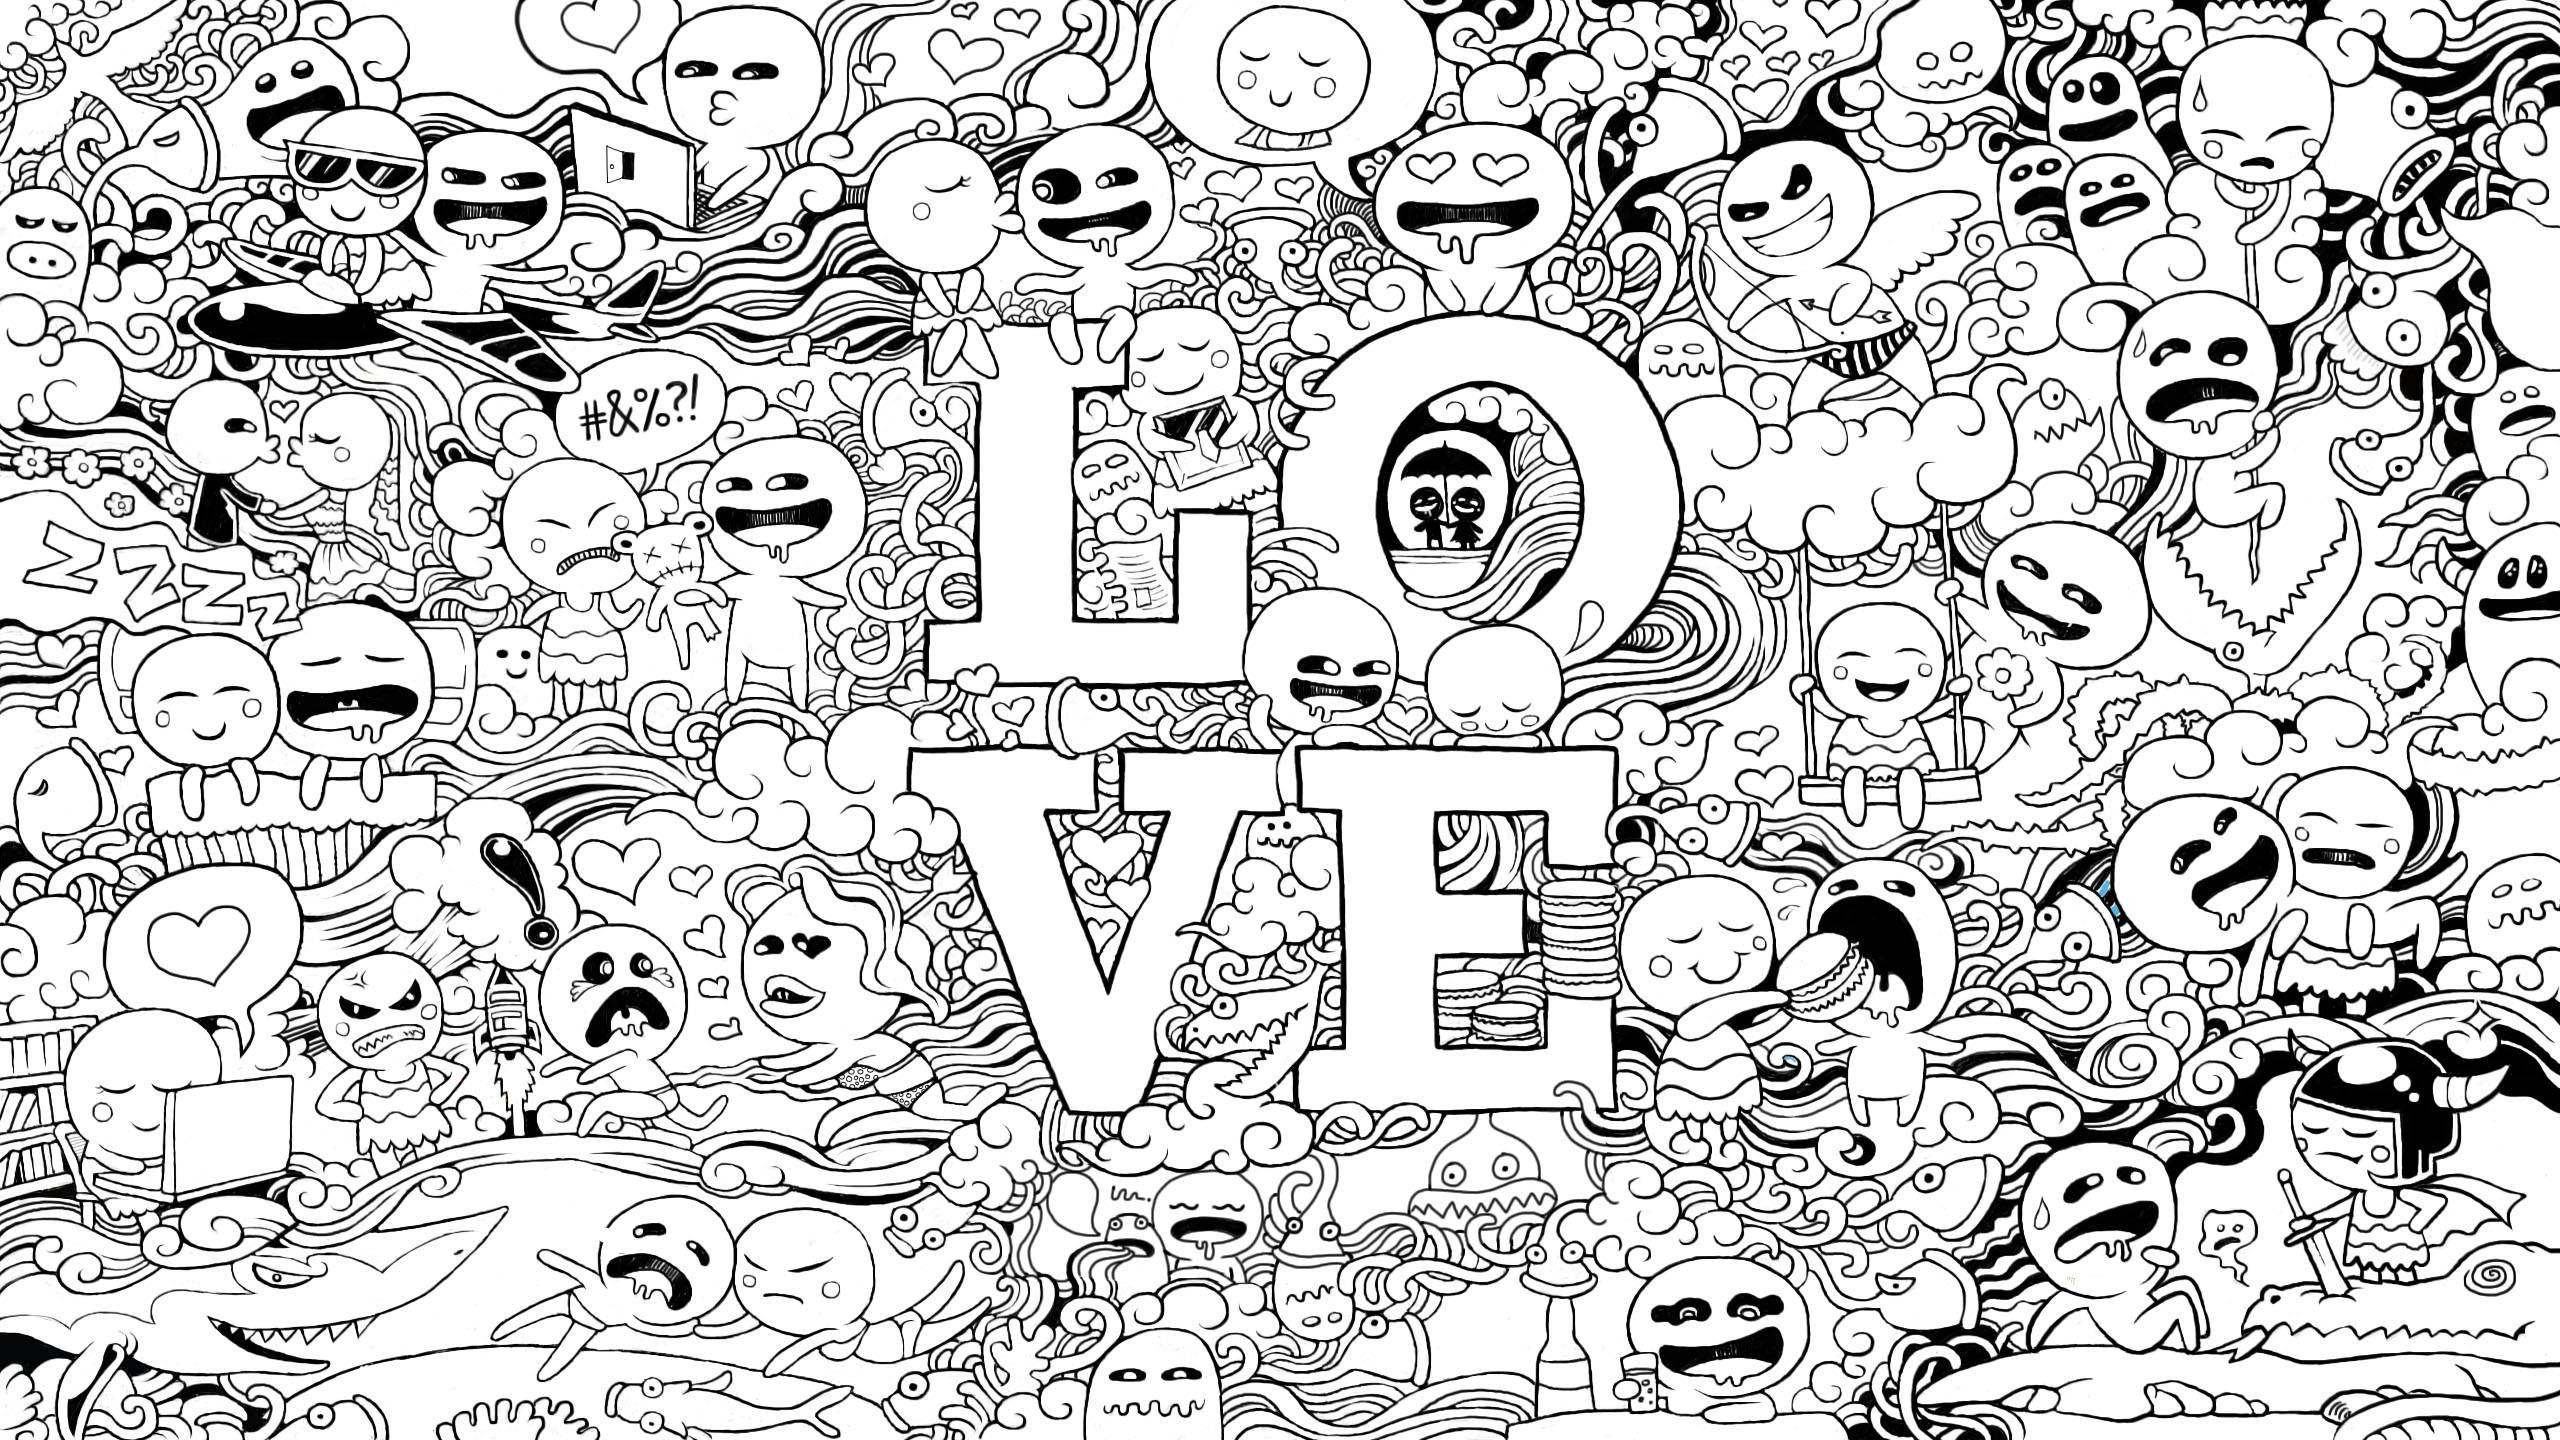 Doodle Art Wallpapers (52+ images)